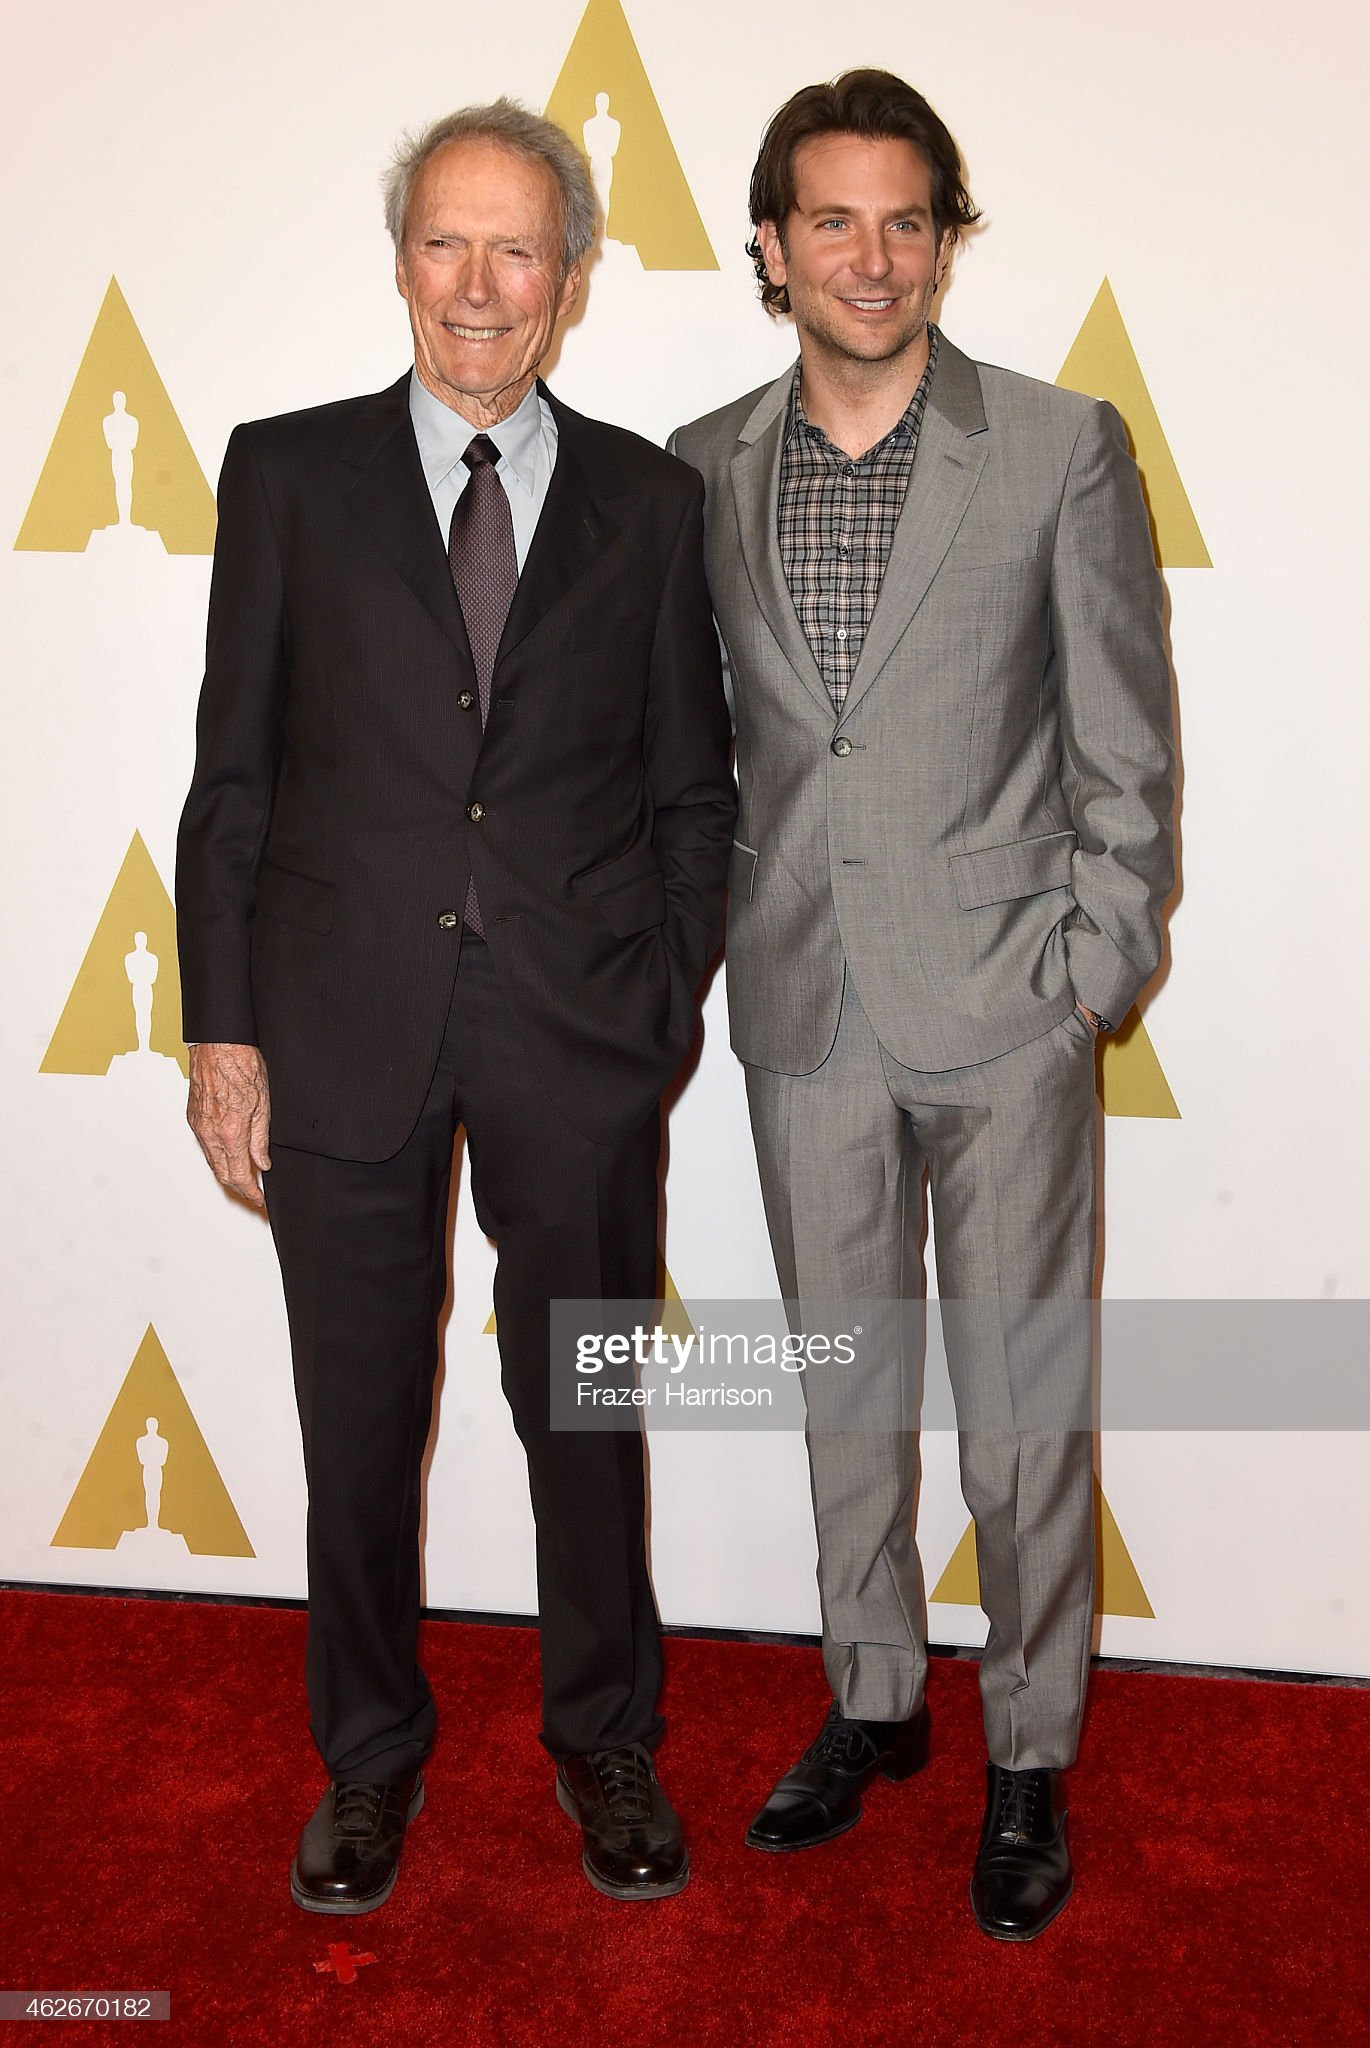 ¿Cuánto mide Clint Eastwood? - Altura - Real height - Página 2 Director-clint-eastwood-and-actor-bradley-cooper-attend-the-87th-picture-id462670182?s=2048x2048